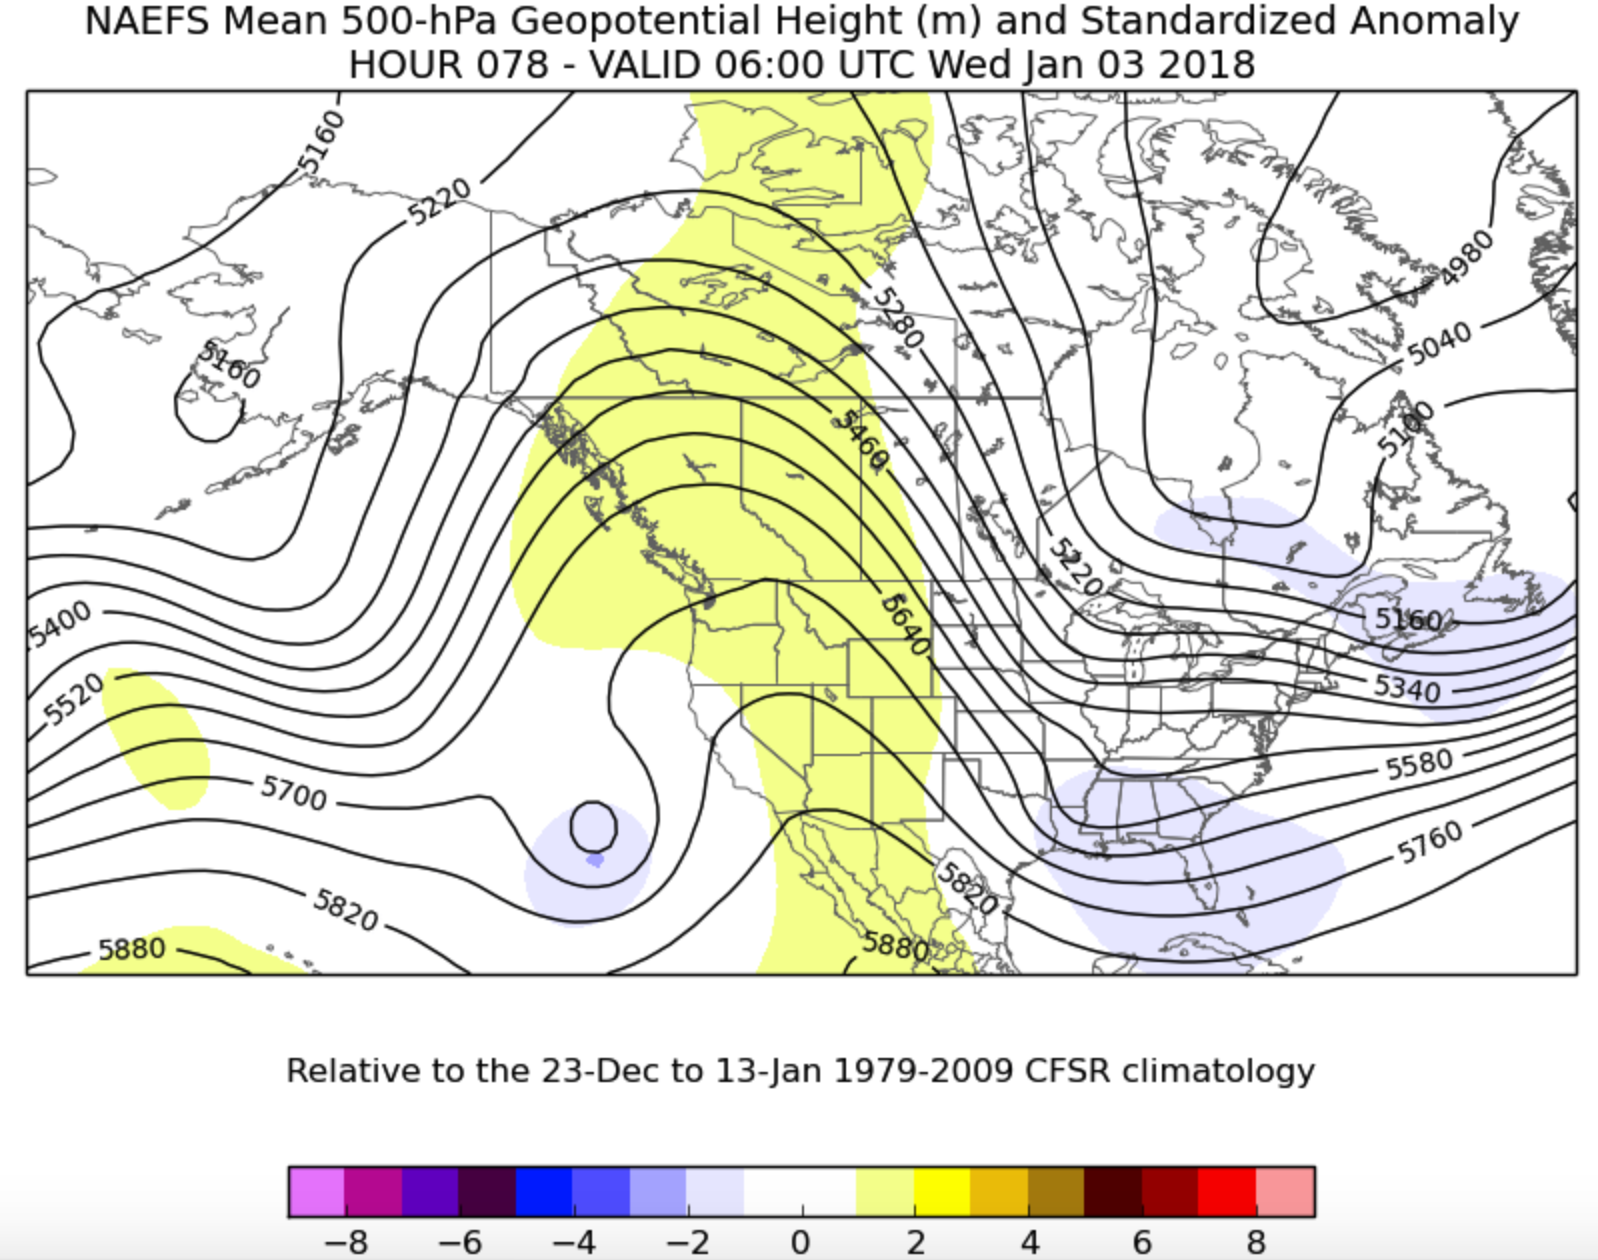 NAEFS mean 500 mb heights valid Tuesday night (6Z Wednesday) via http://ssd.wrh.noaa.gov/satable/